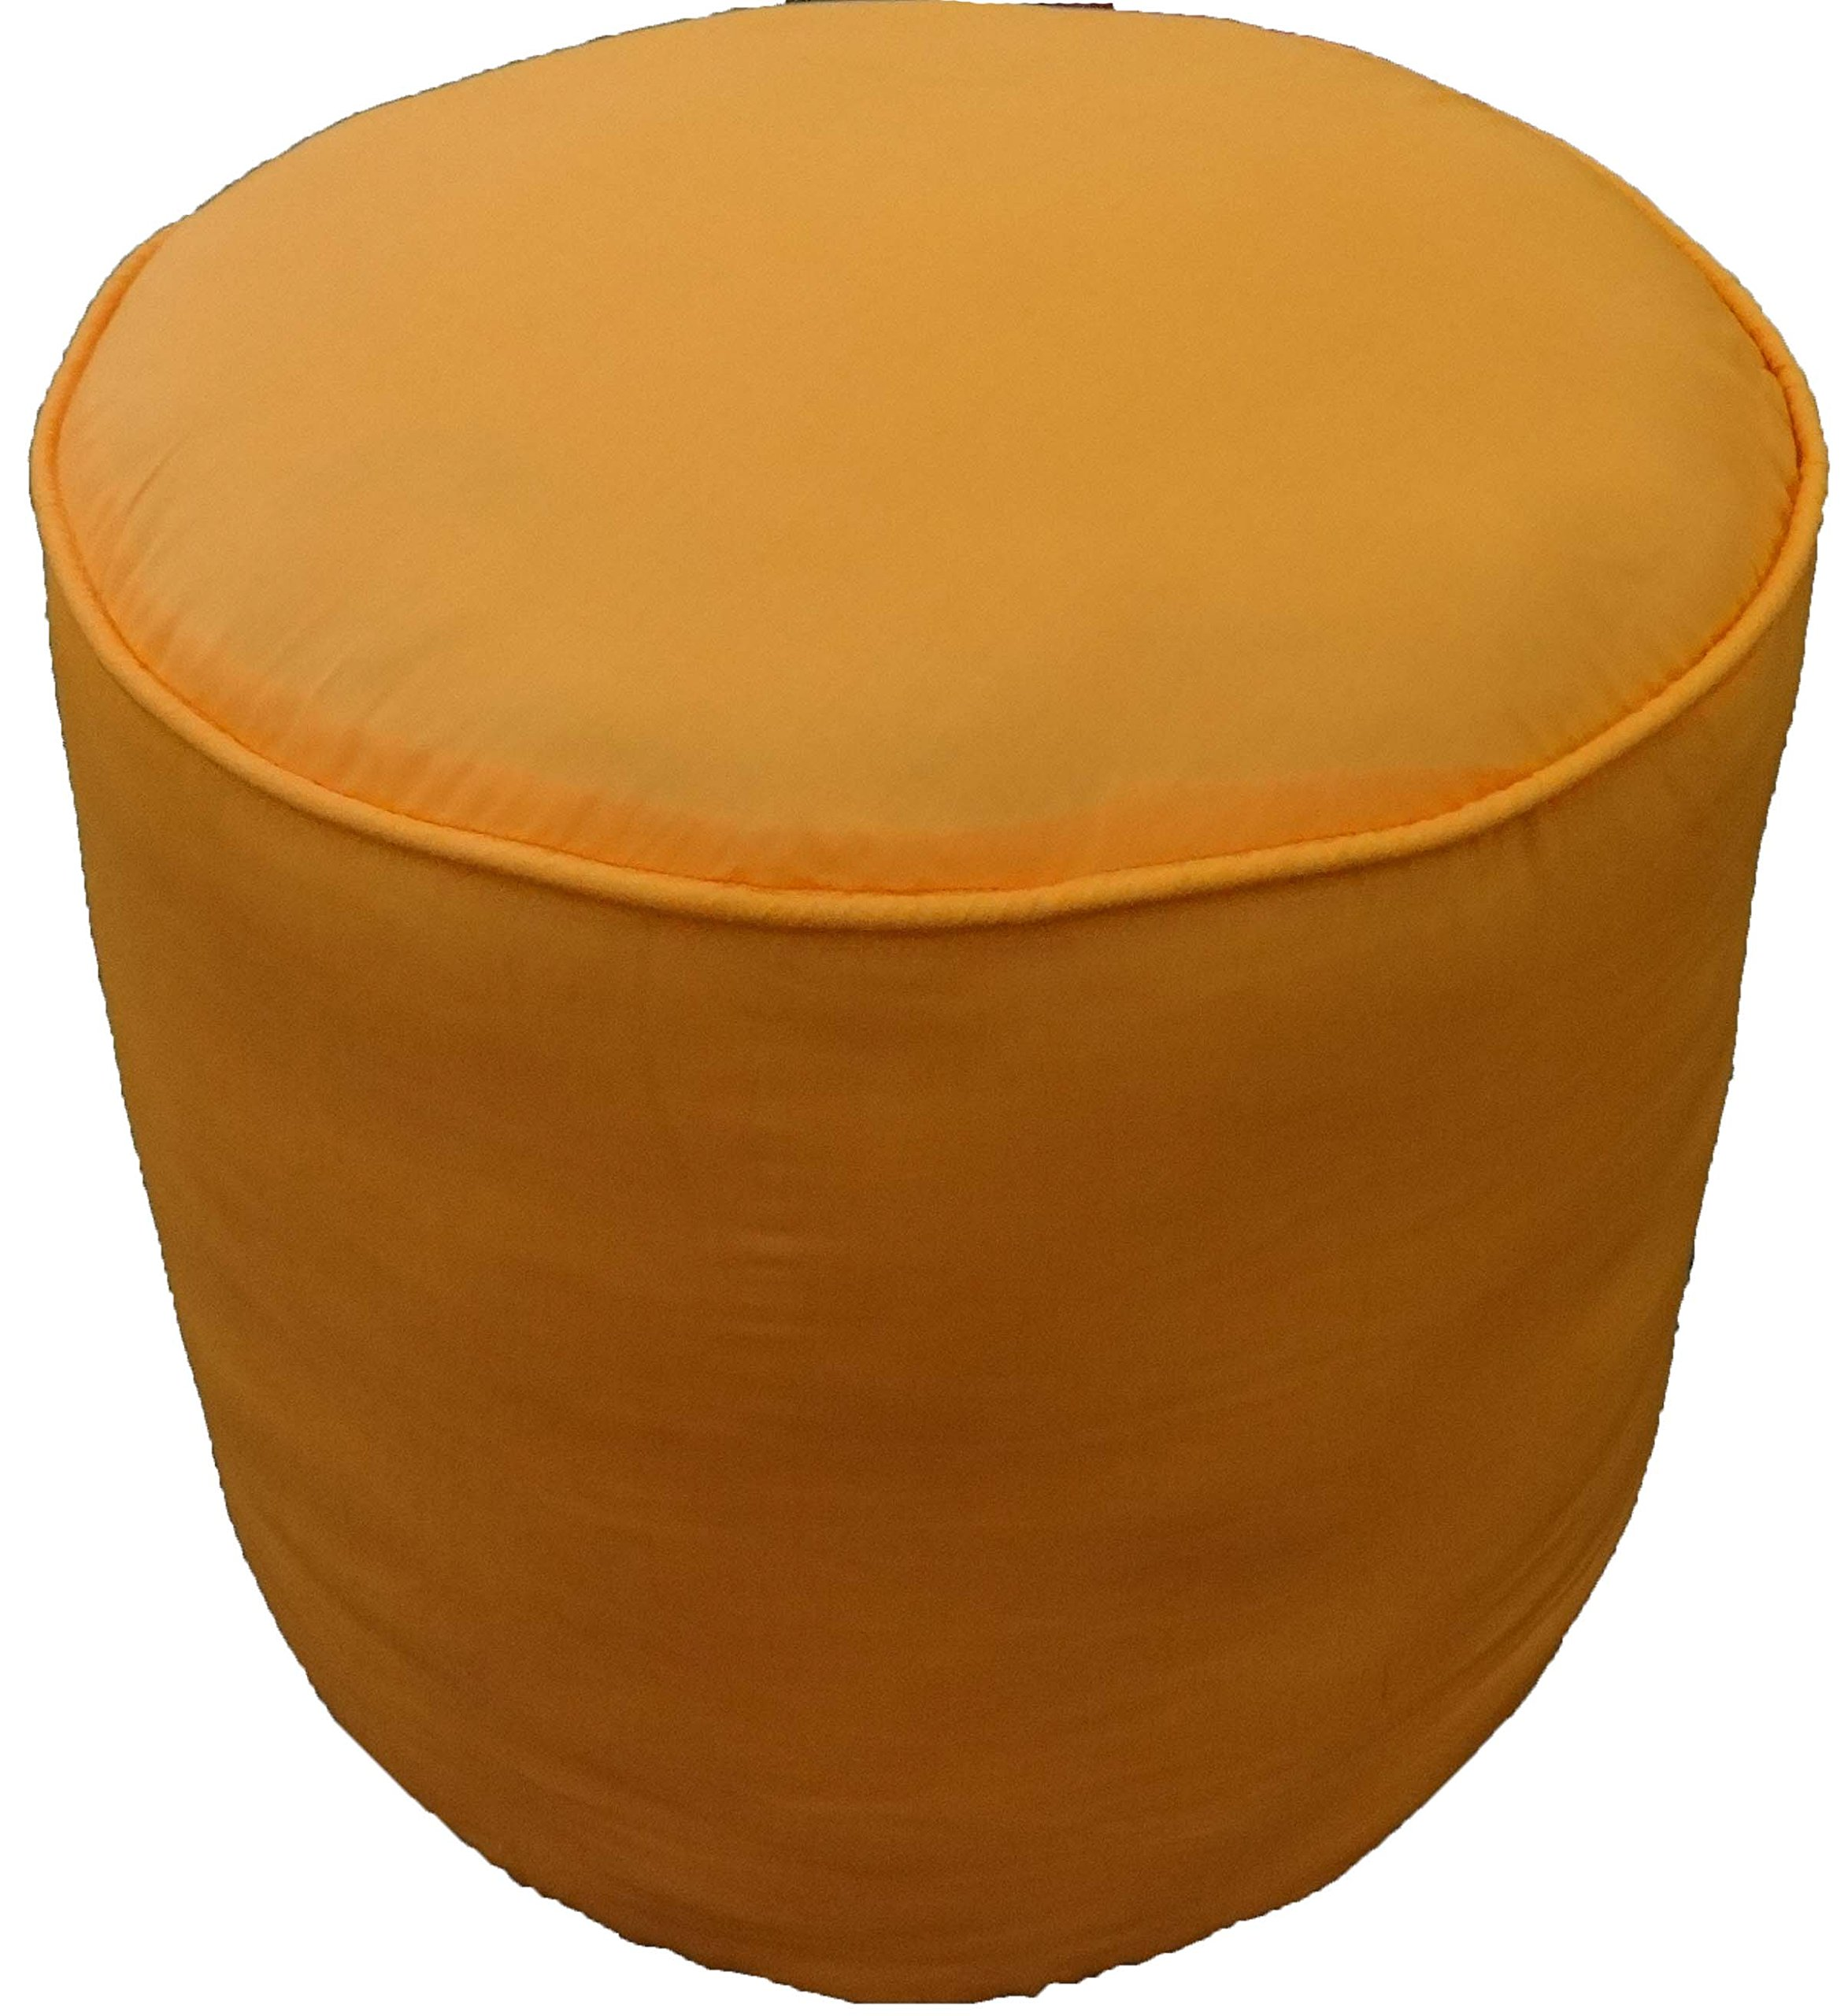 100% Cotton Plain Piping Round Ottoman Throw Pouf Cover (20''Wx16''H, Saffron) COVER ONLY, Not Stuffed , Insert not Included